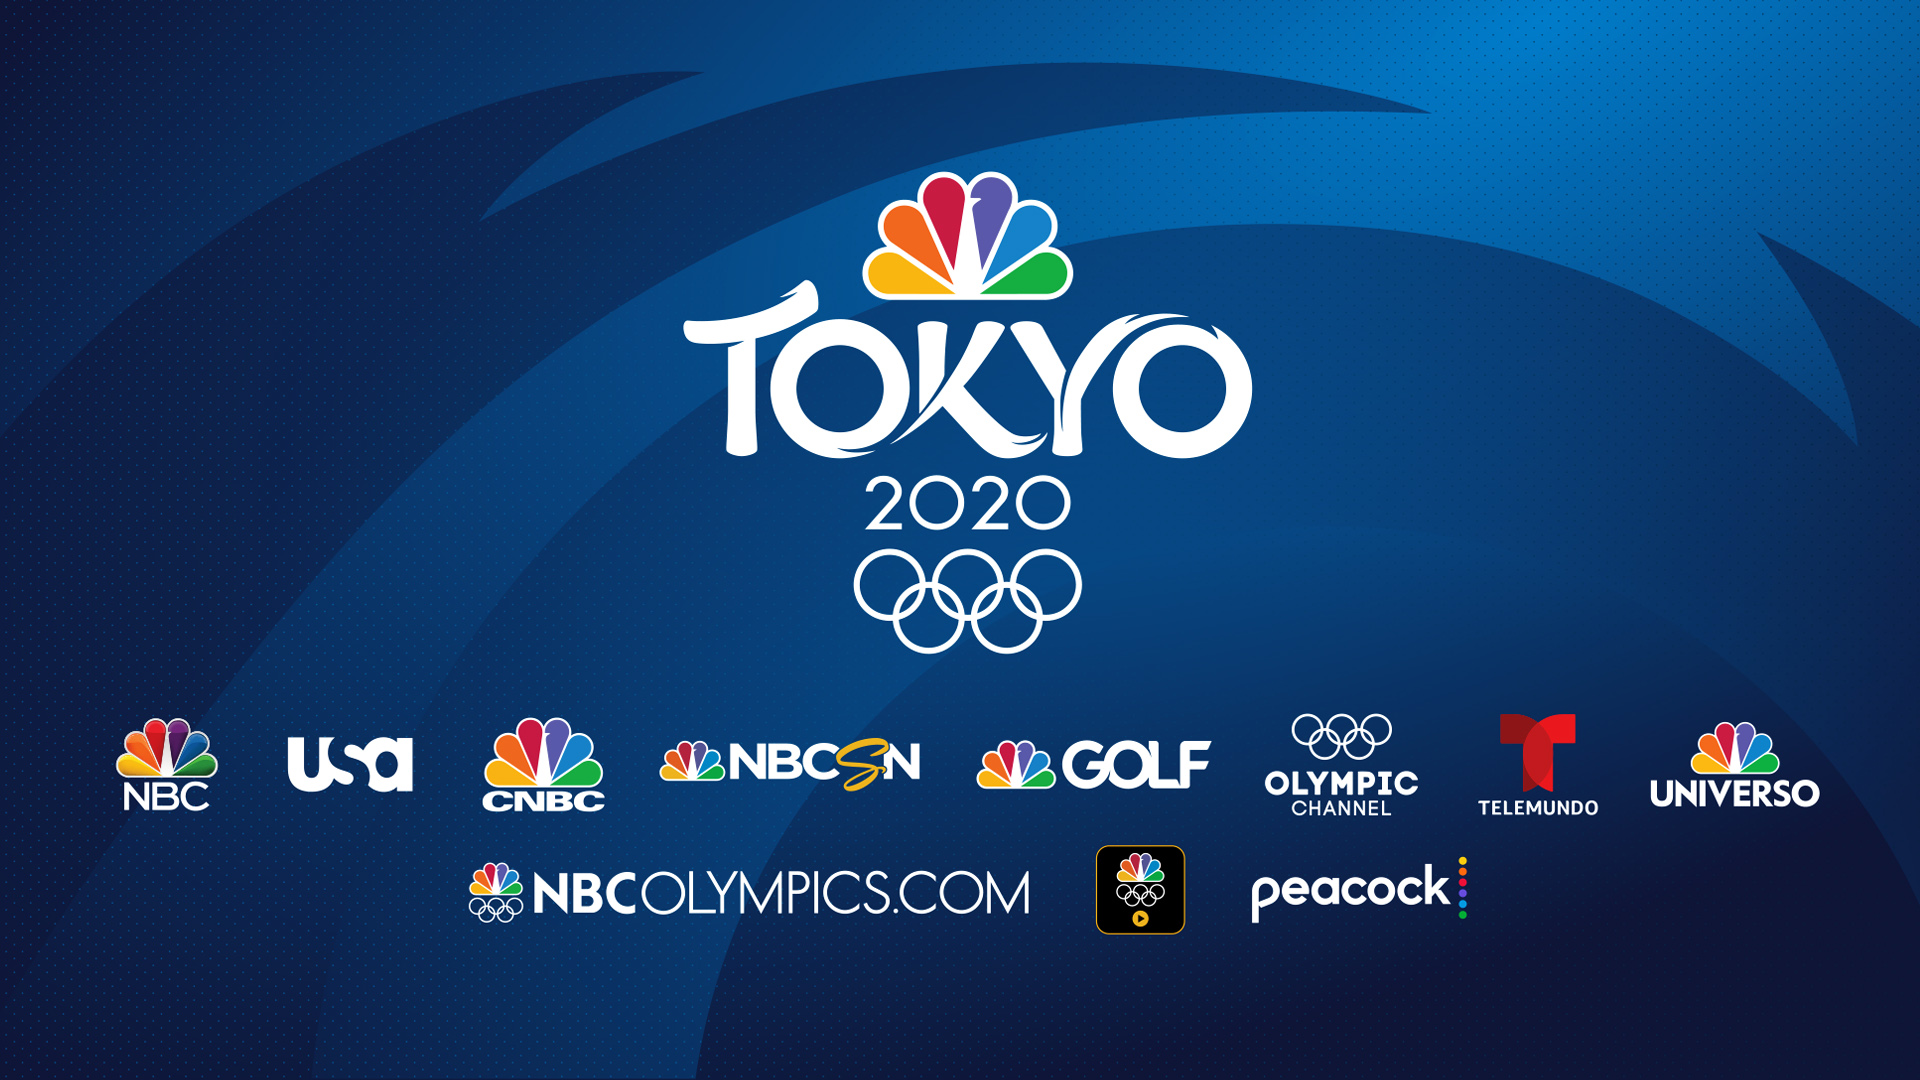 NBCUNIVERSAL TO PRESENT UNPRECEDENTED 7,000 HOURS OF PROGRAMMING FOR TOKYO  OLYMPICS THIS SUMMER - NBC Sports PressboxNBC Sports Pressbox